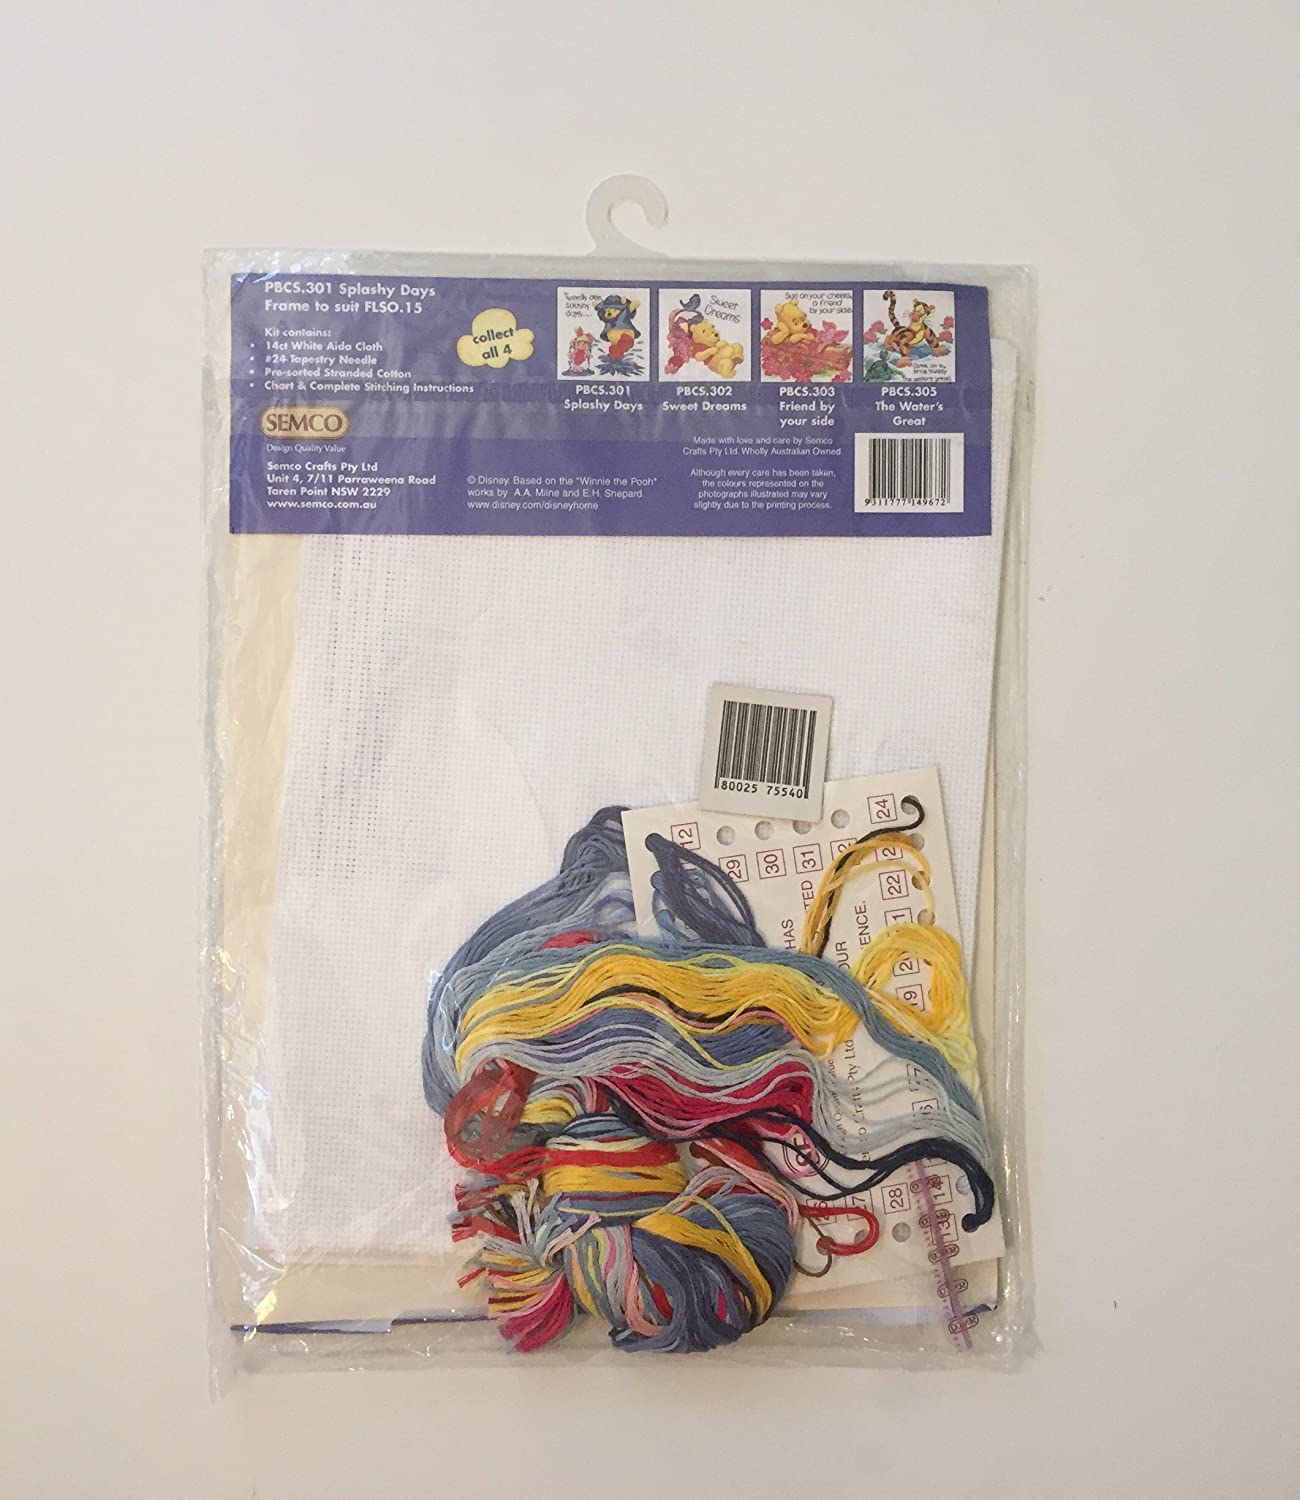 Counted Cross Stitch Kit By Semco Winnie The Pooh Splashy Days Electrical Wiring Colours Australia White 99 X Discontinued Owned Manufacturer Pbsc301 Home Kitchen